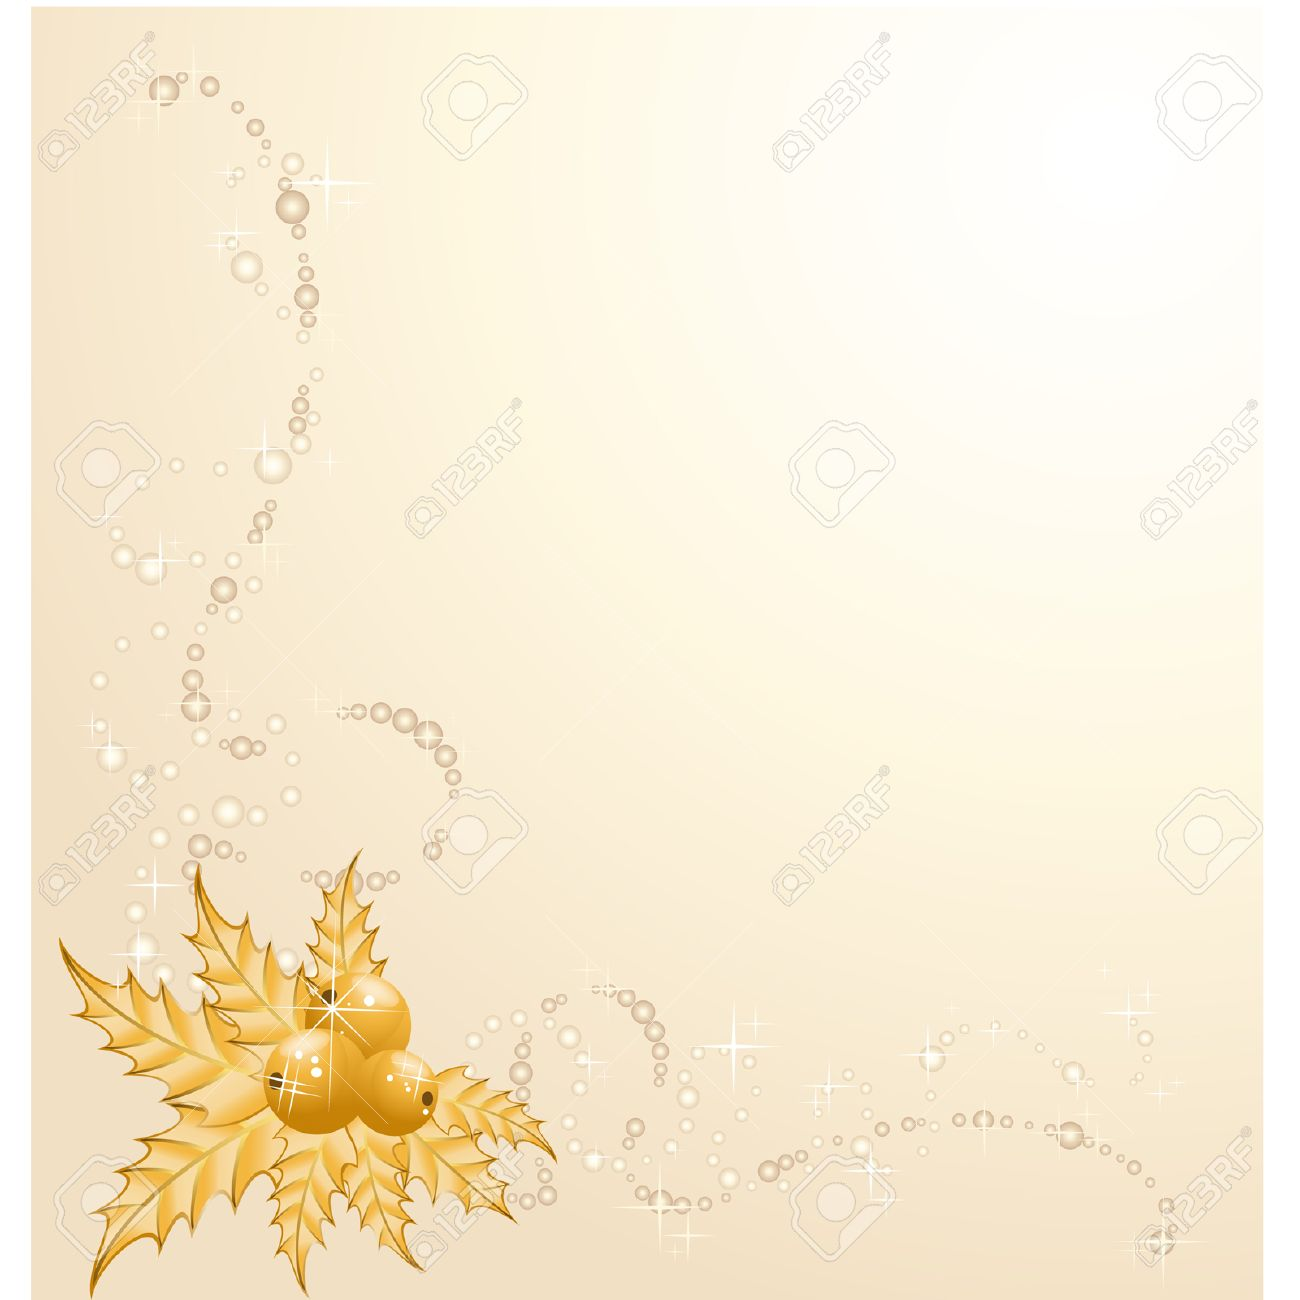 Adorning, Album, Anniversary, Background, Beads, Birthday, Branch